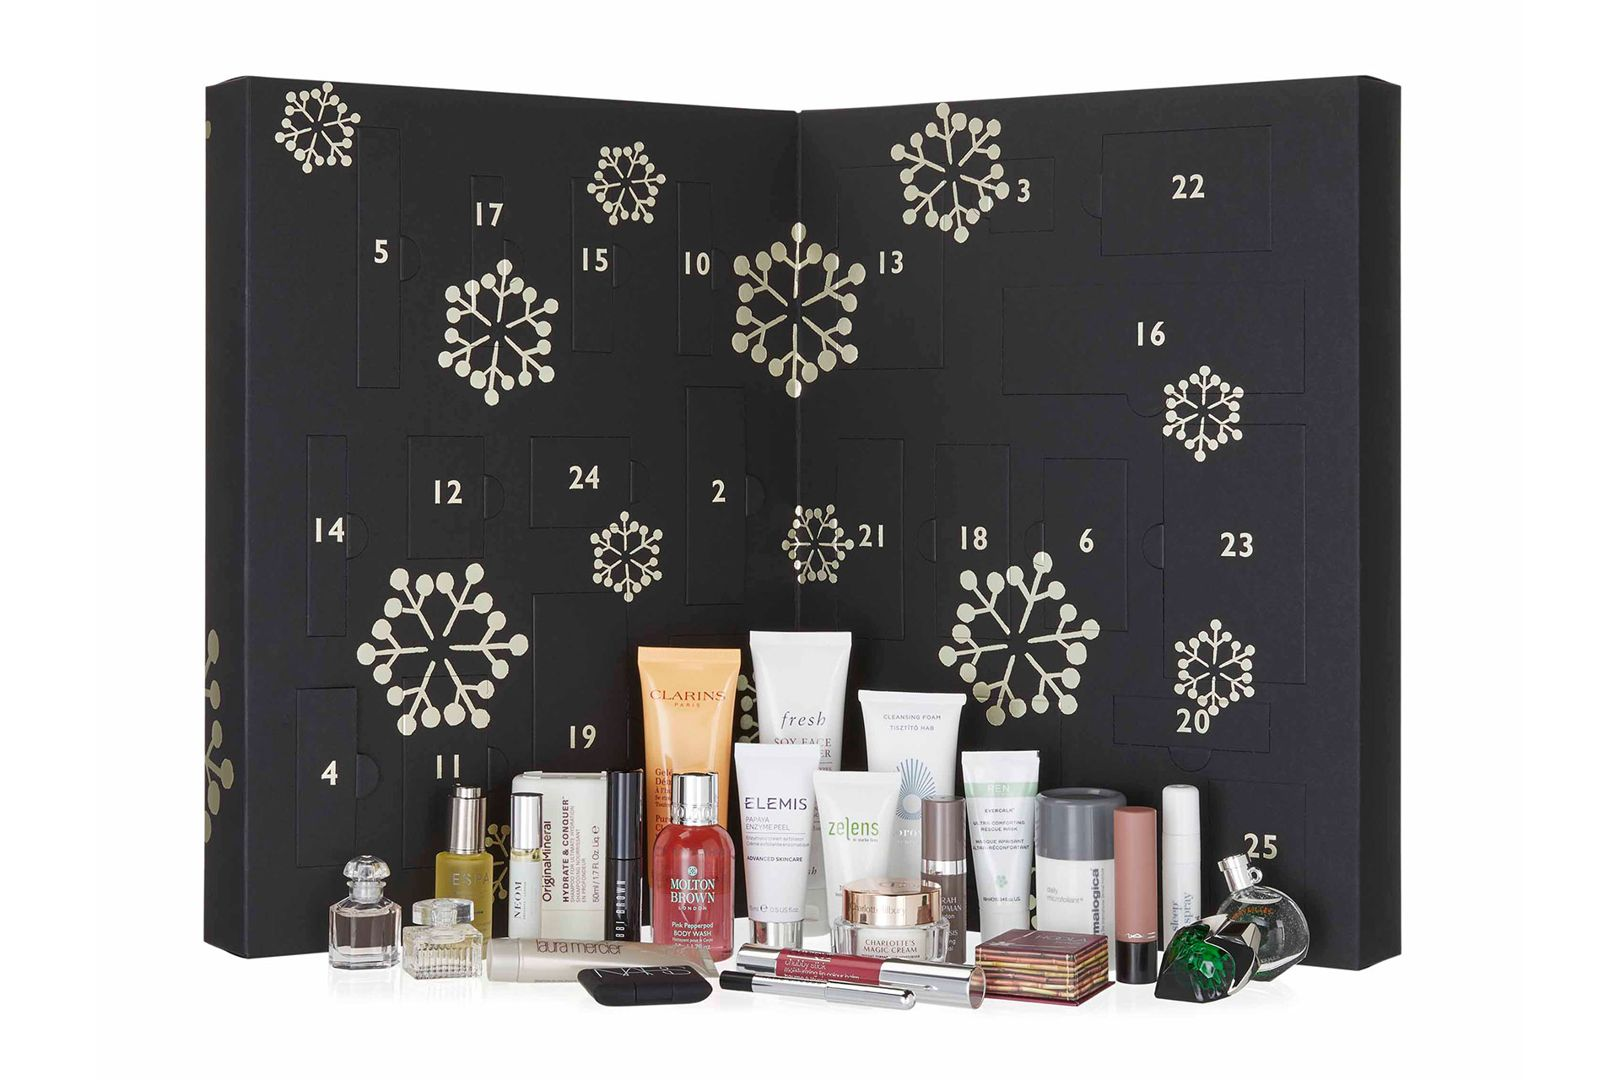 The beauty advent calendars to buy before they sell out: https://t.co/Bb4O90bHCM https://t.co/DOkRvoHB5o